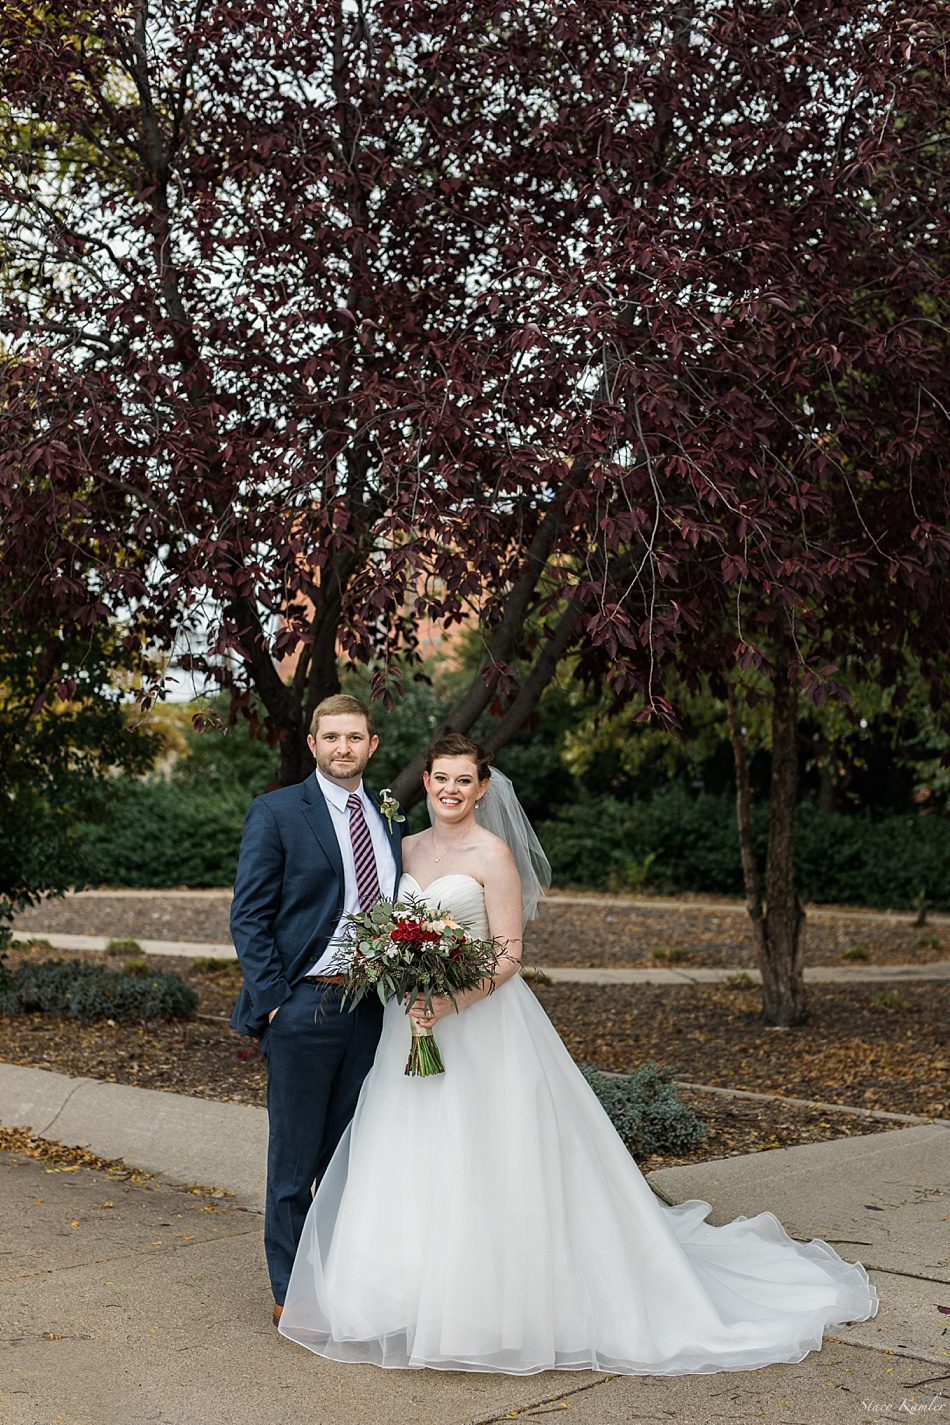 Bride and Groom Portraits after the ceremony